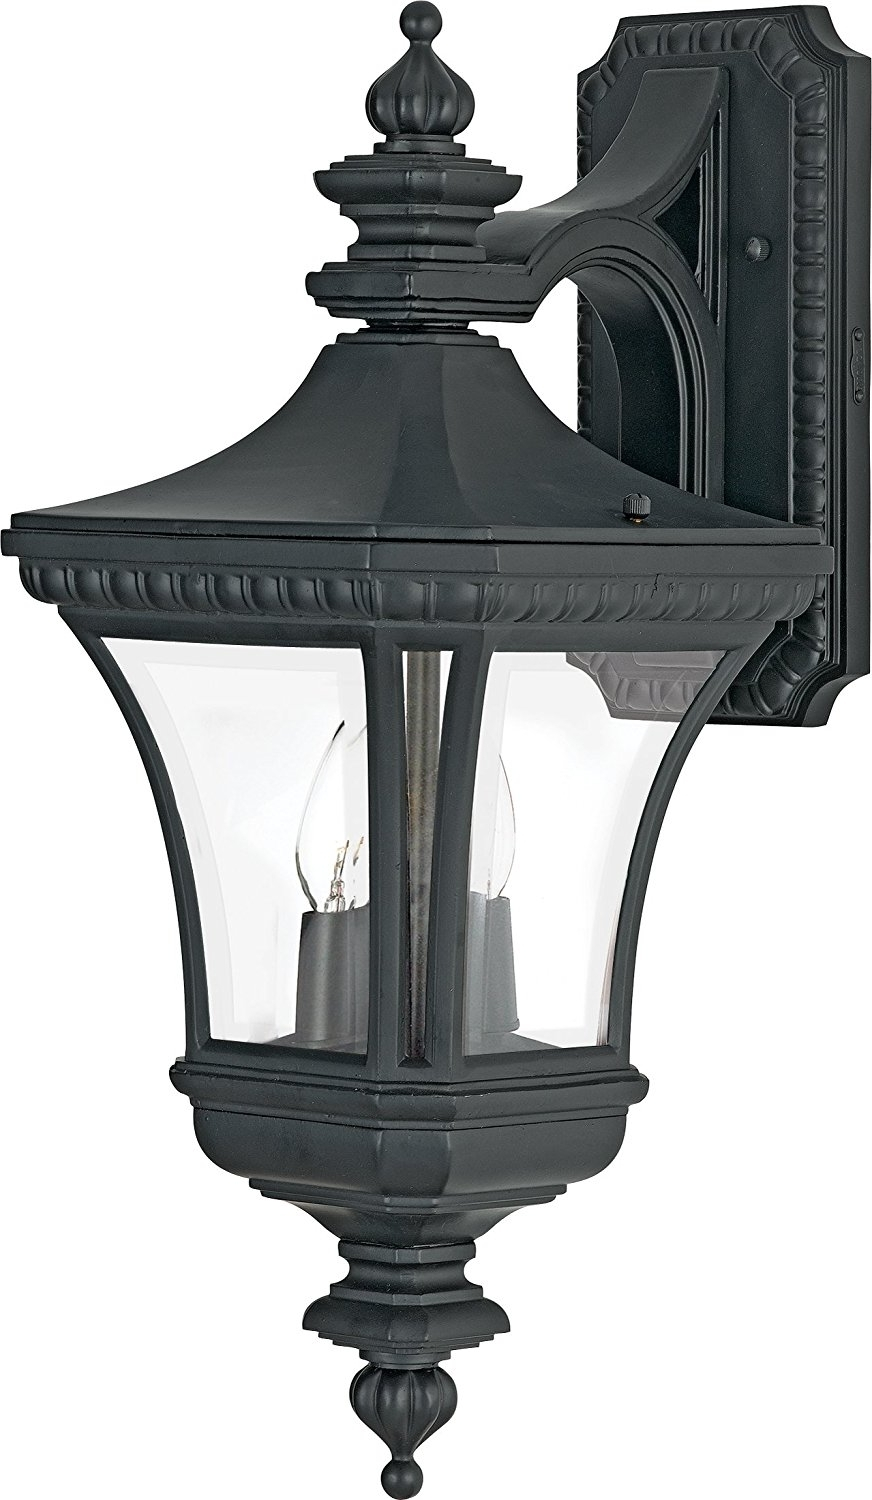 Trendy Quoizel Outdoor Lanterns Inside Black Round Lamp Shades Lantern What Is A Stack Lamps R Us Quoizel (View 19 of 20)